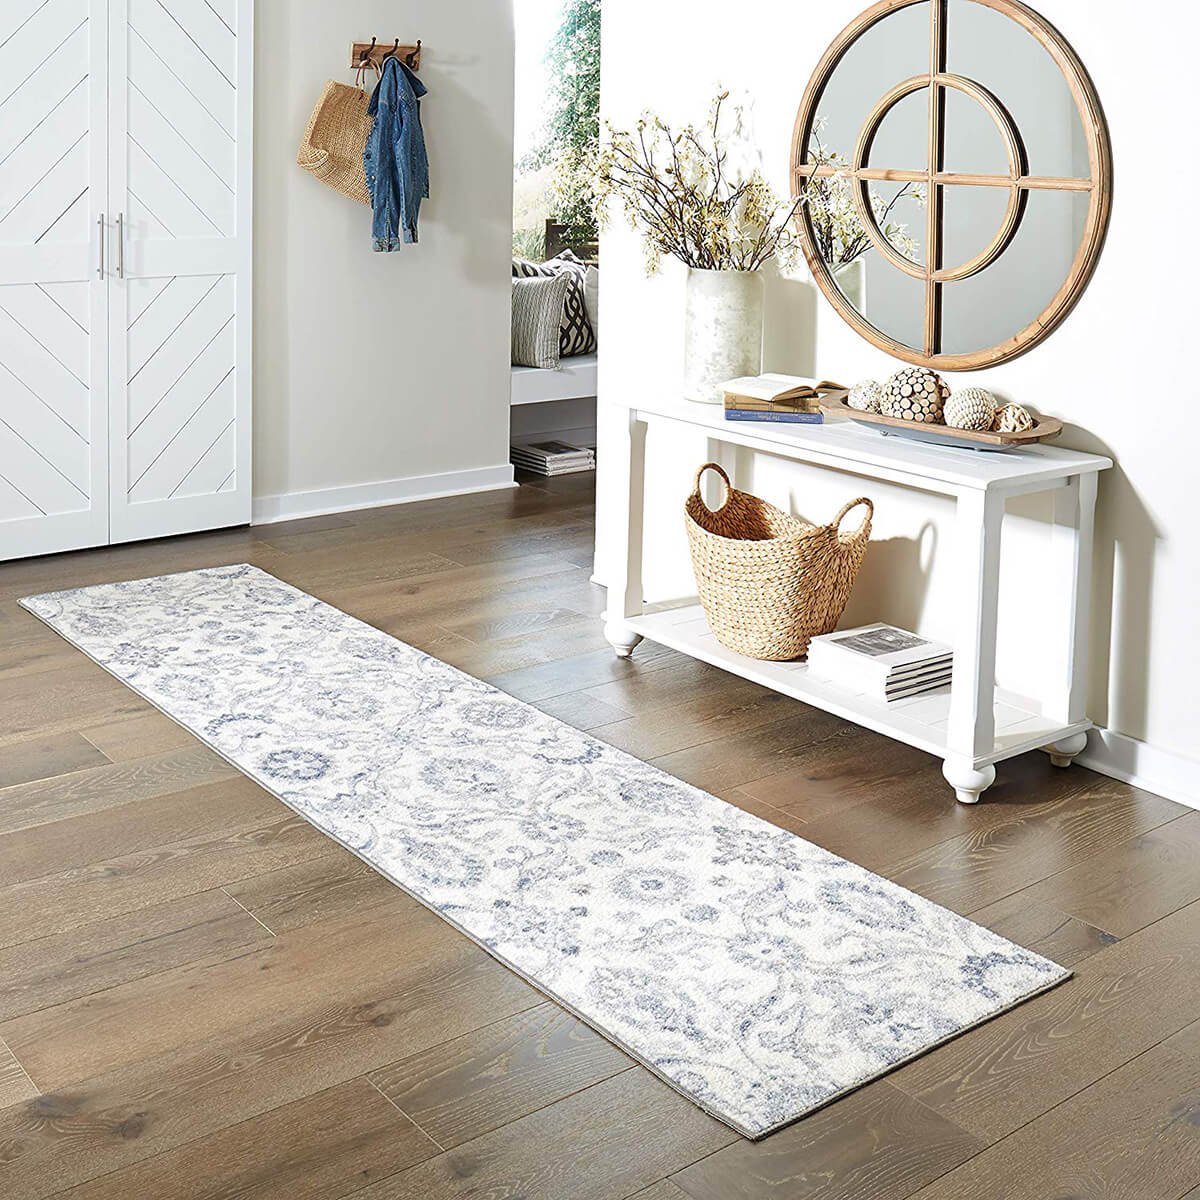 Blooming Damask Rug Immerses Guests